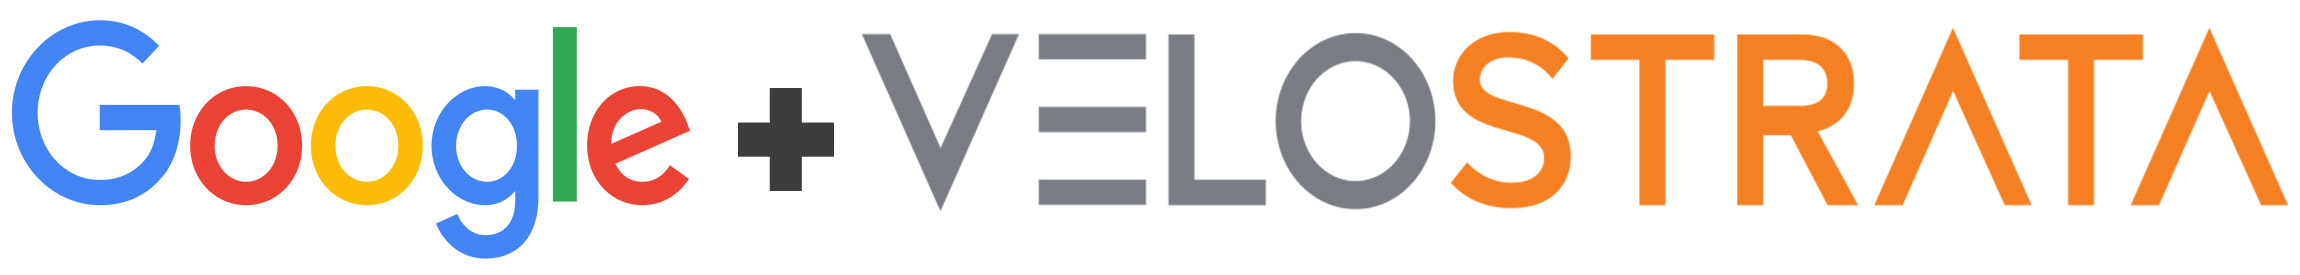 Google to Acquire Velostrata, a Leader in Enterprise Cloud Migration Technology